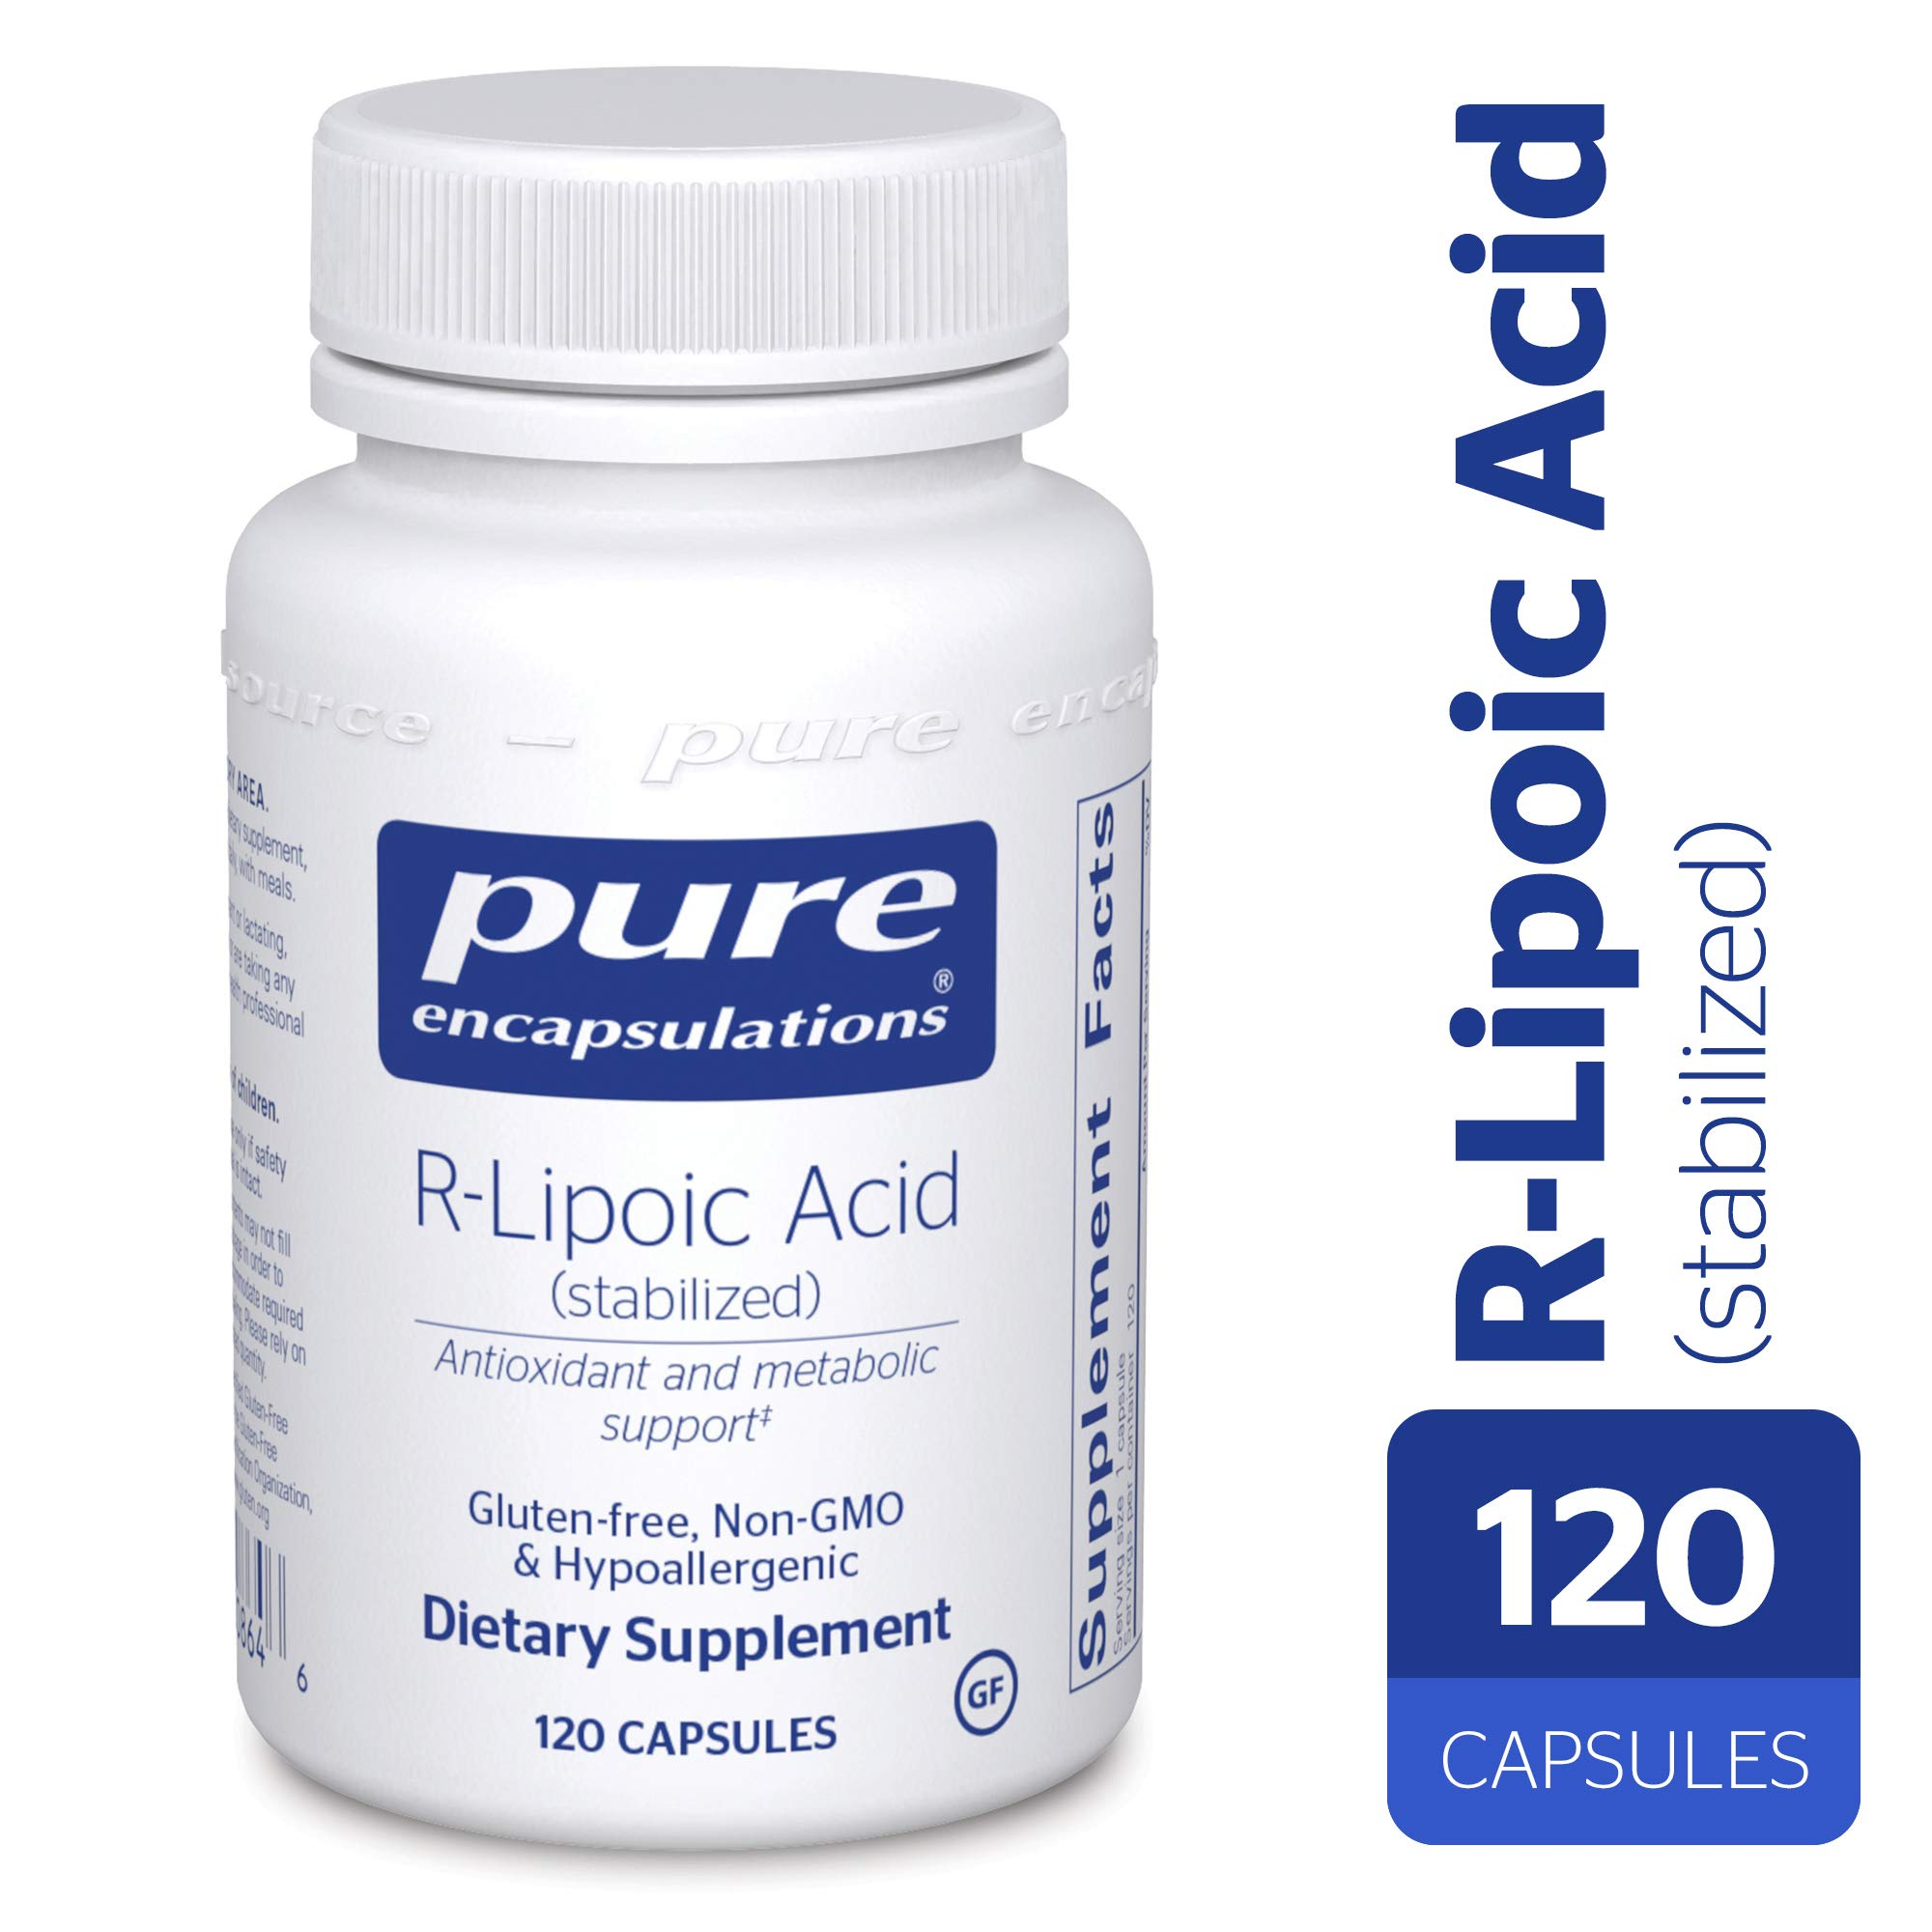 Pure Encapsulations - R-Lipoic Acid (Stabilized) - Hypoallergenic Supplement with Enhanced Antioxidant Protection and Metabolic Support* - 120 Capsules